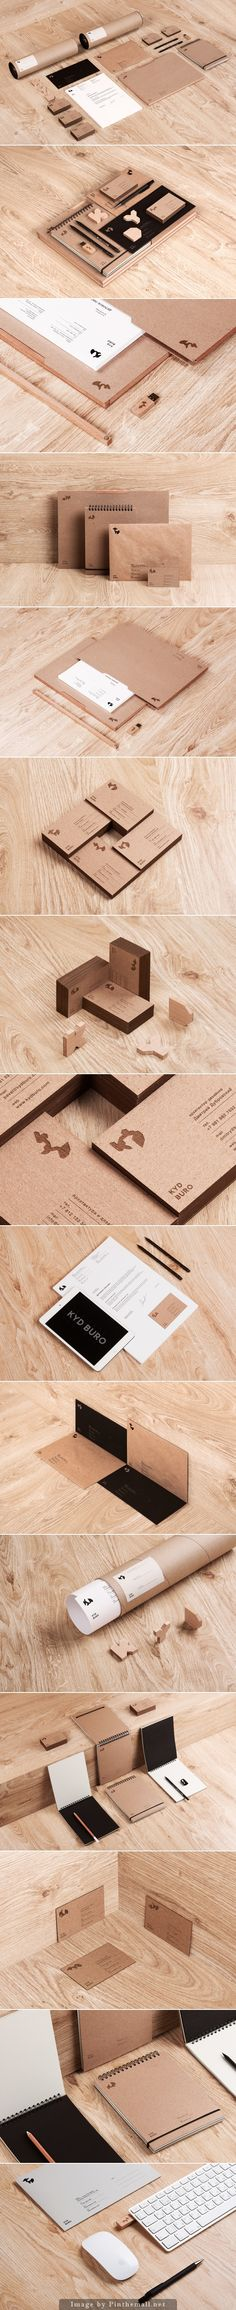 logo corporate branding visual graphic identity kraft paper design business card label print usb nature notepad minimal letterpress texture wood organic letter